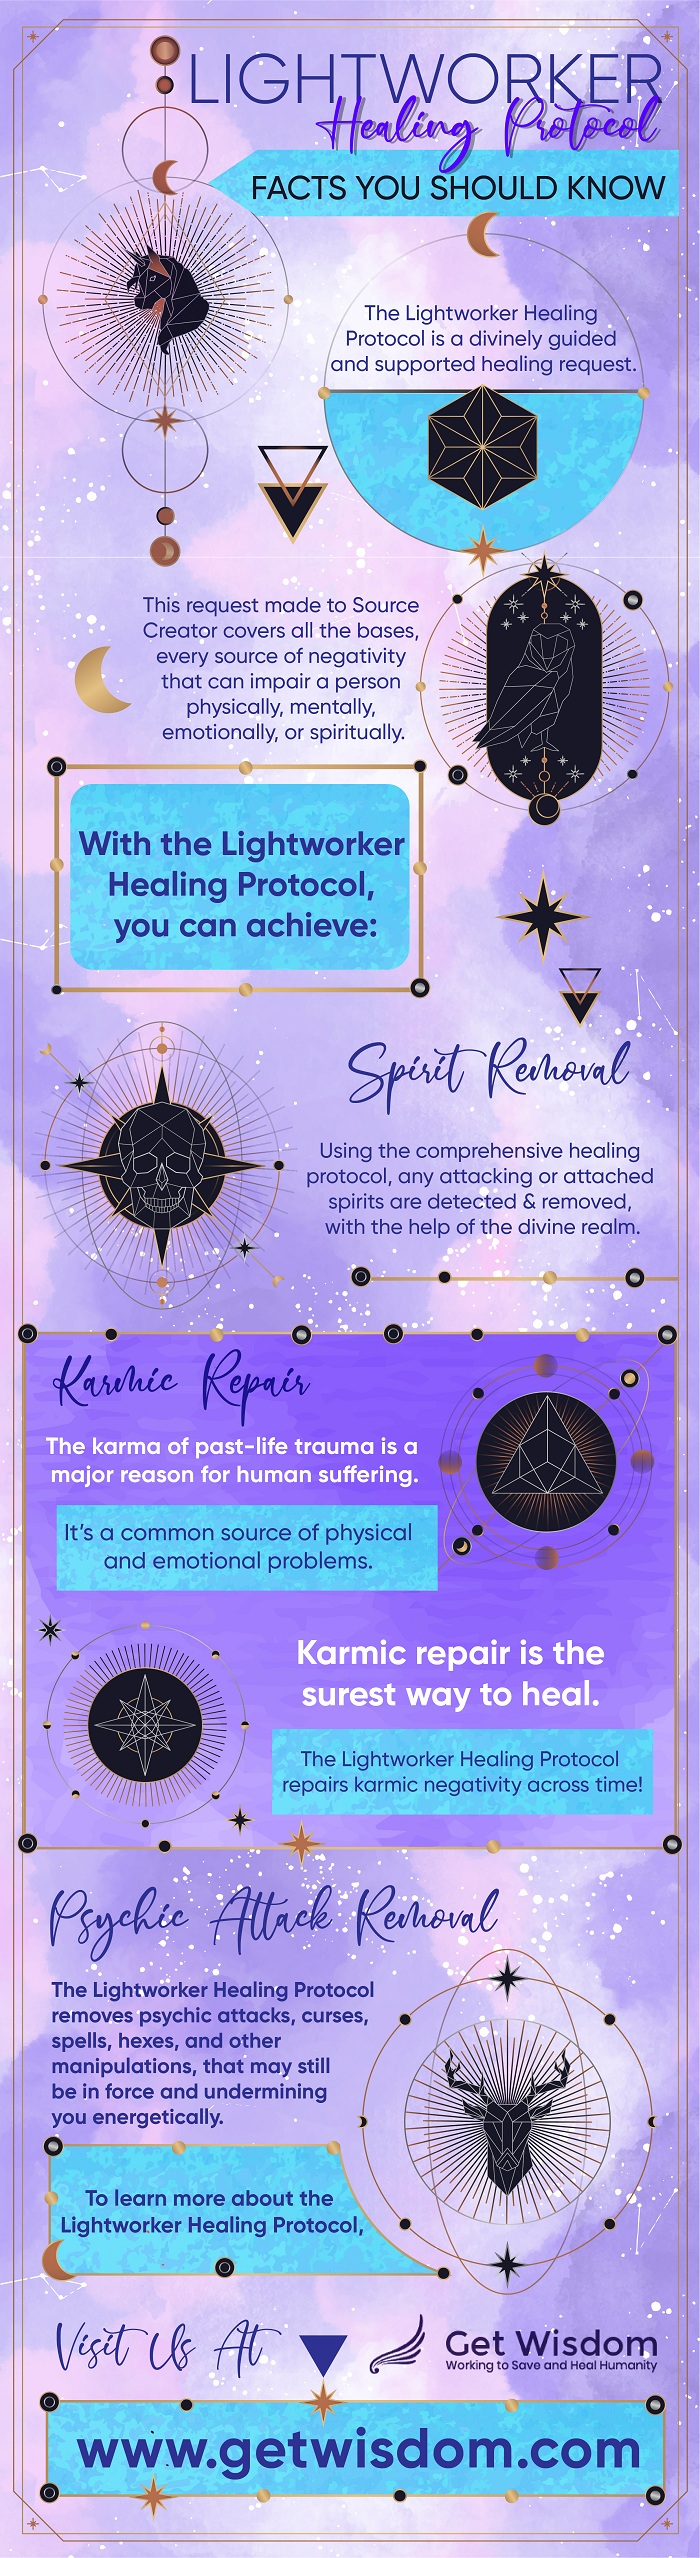 Lighworker Healing Protocol: Facts You Should Know